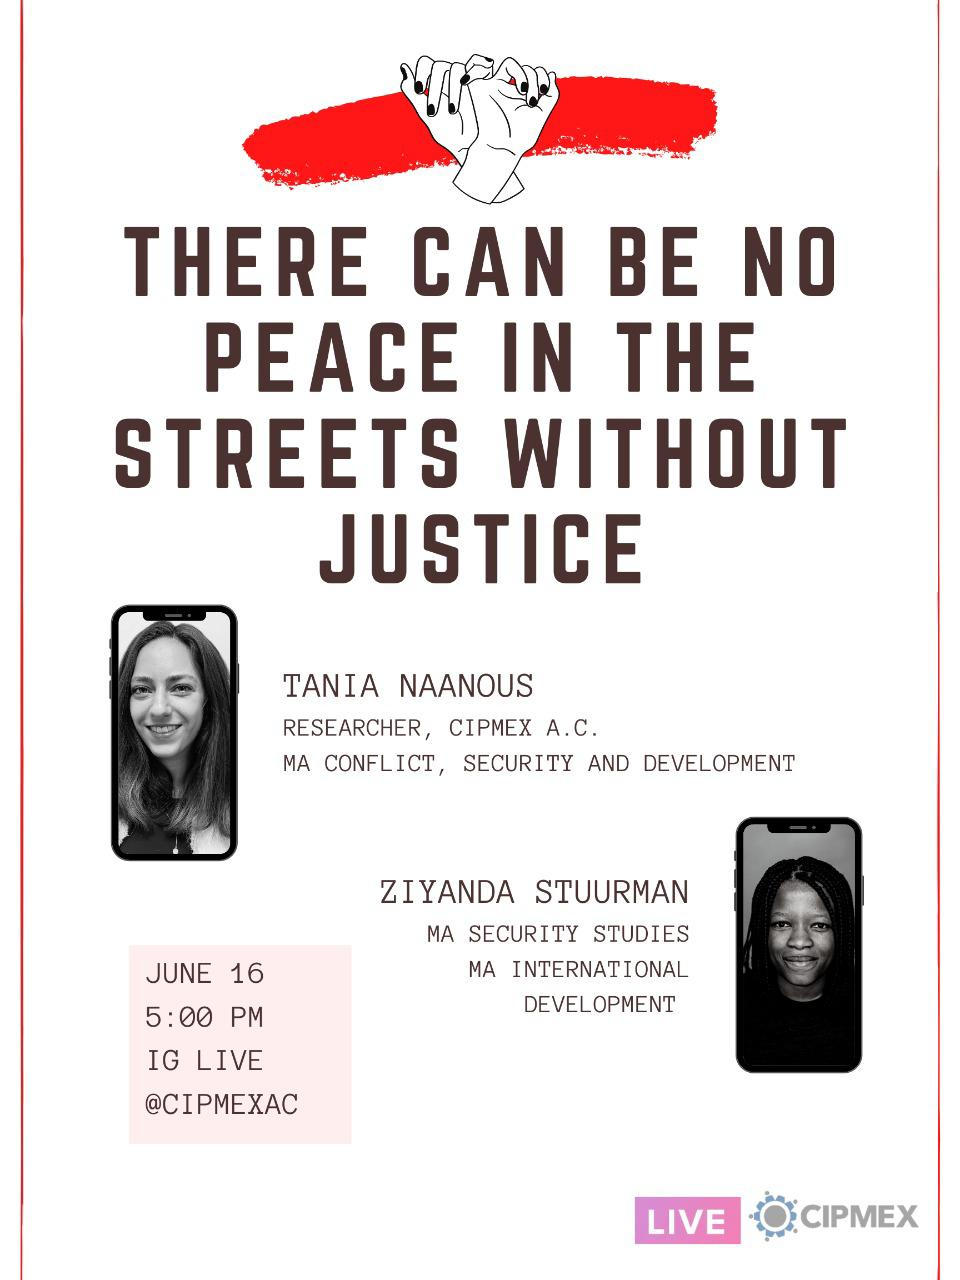 Instagram live – There can be no peace in the streets without justice.